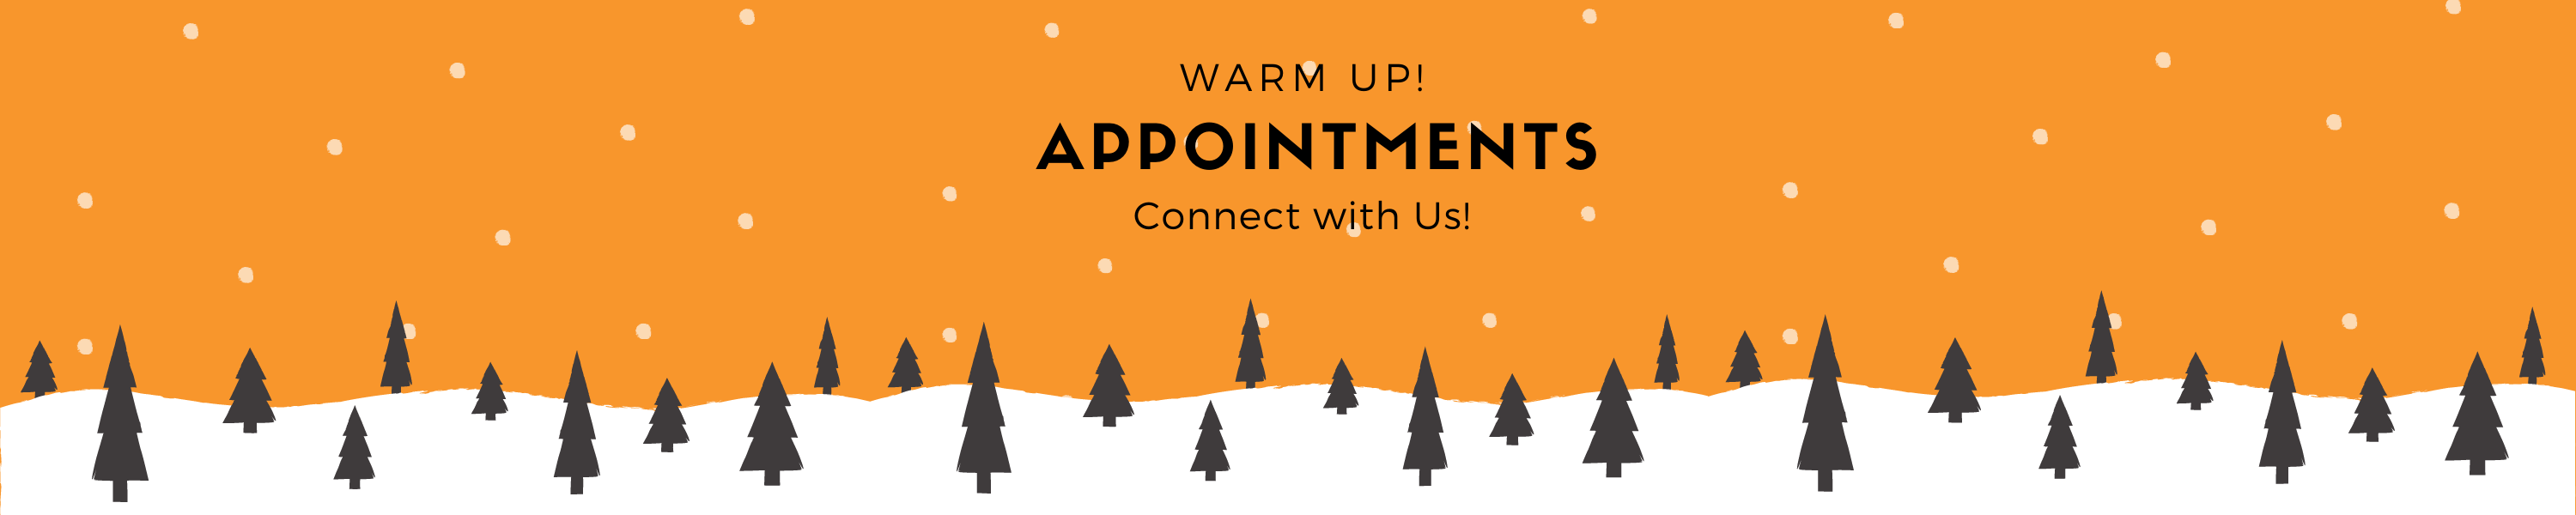 Appointments banner